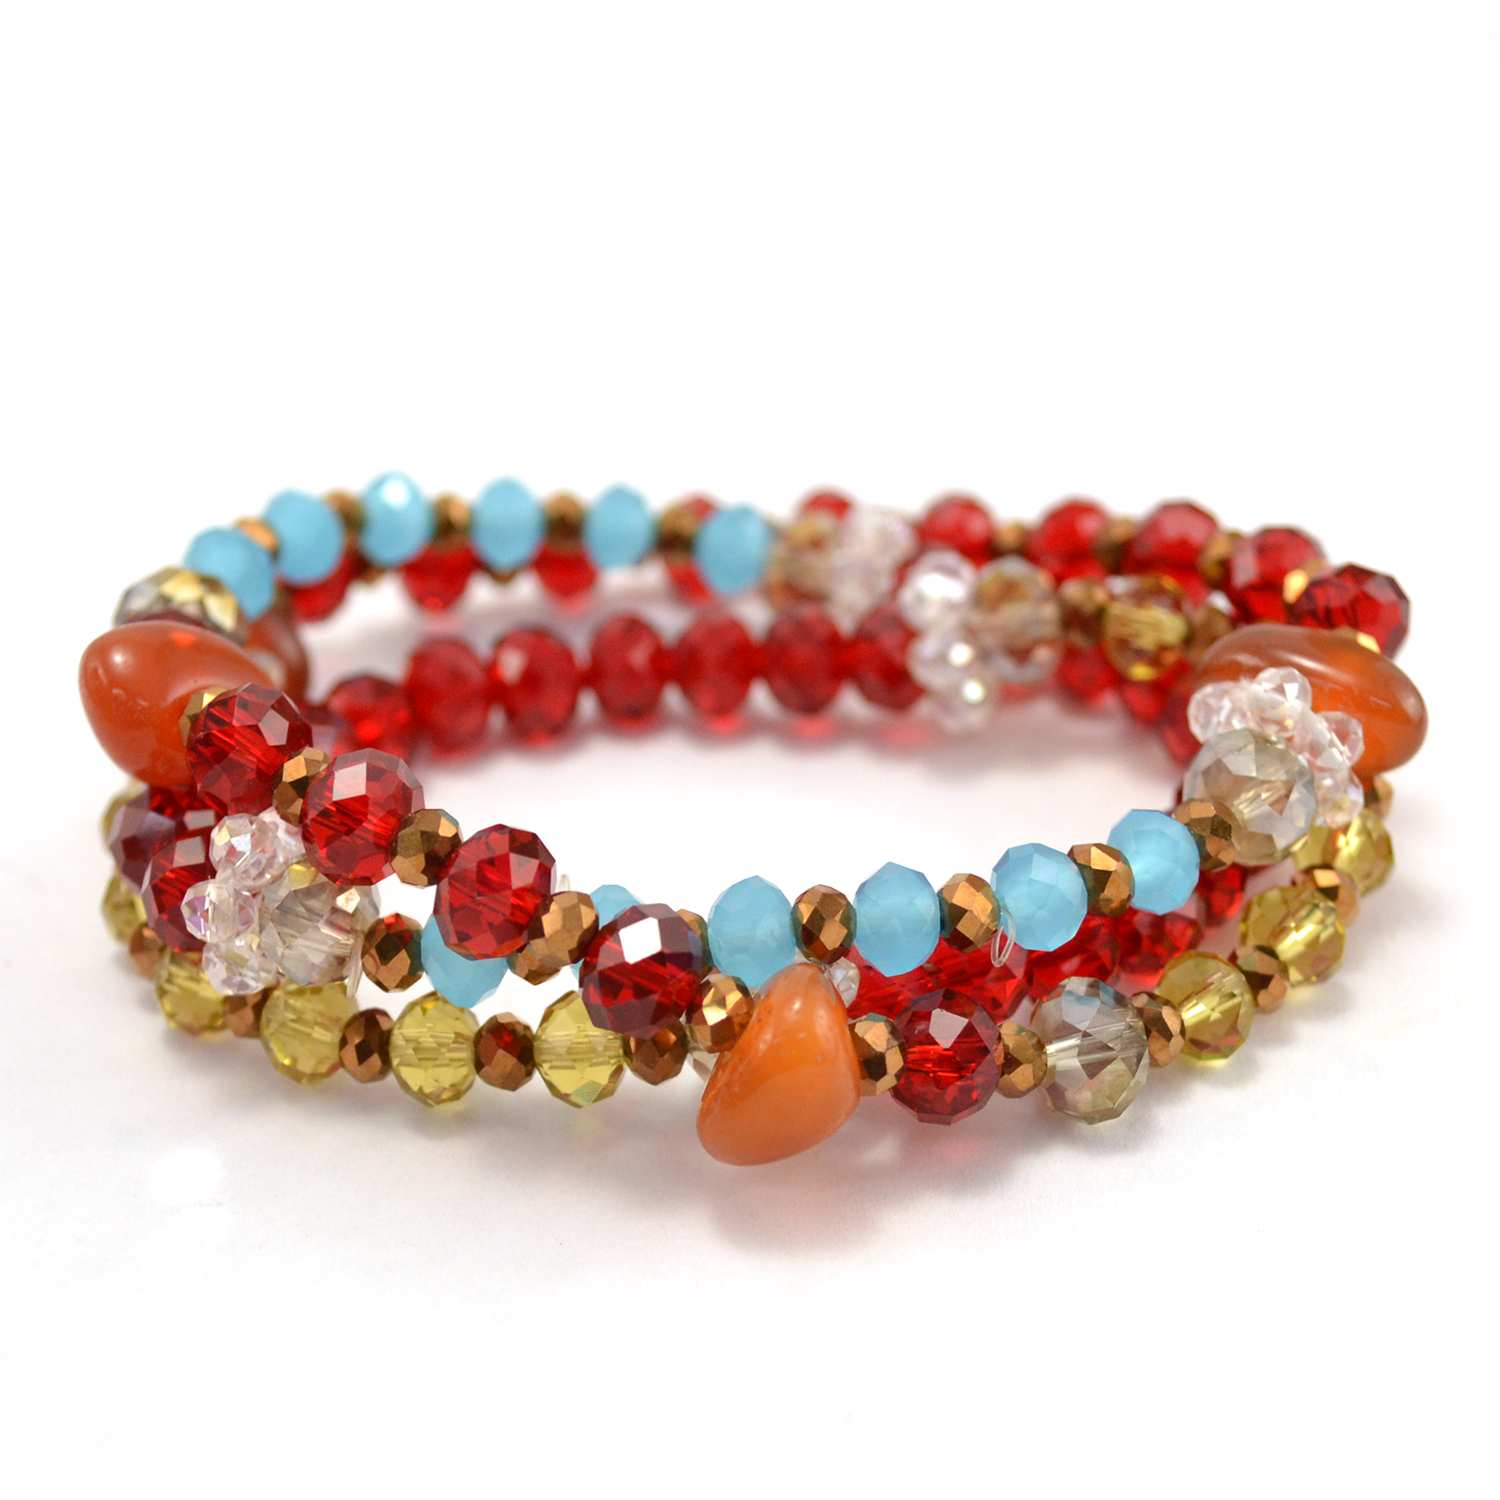 Vintage Crystal Wrap Bracelet in red multi